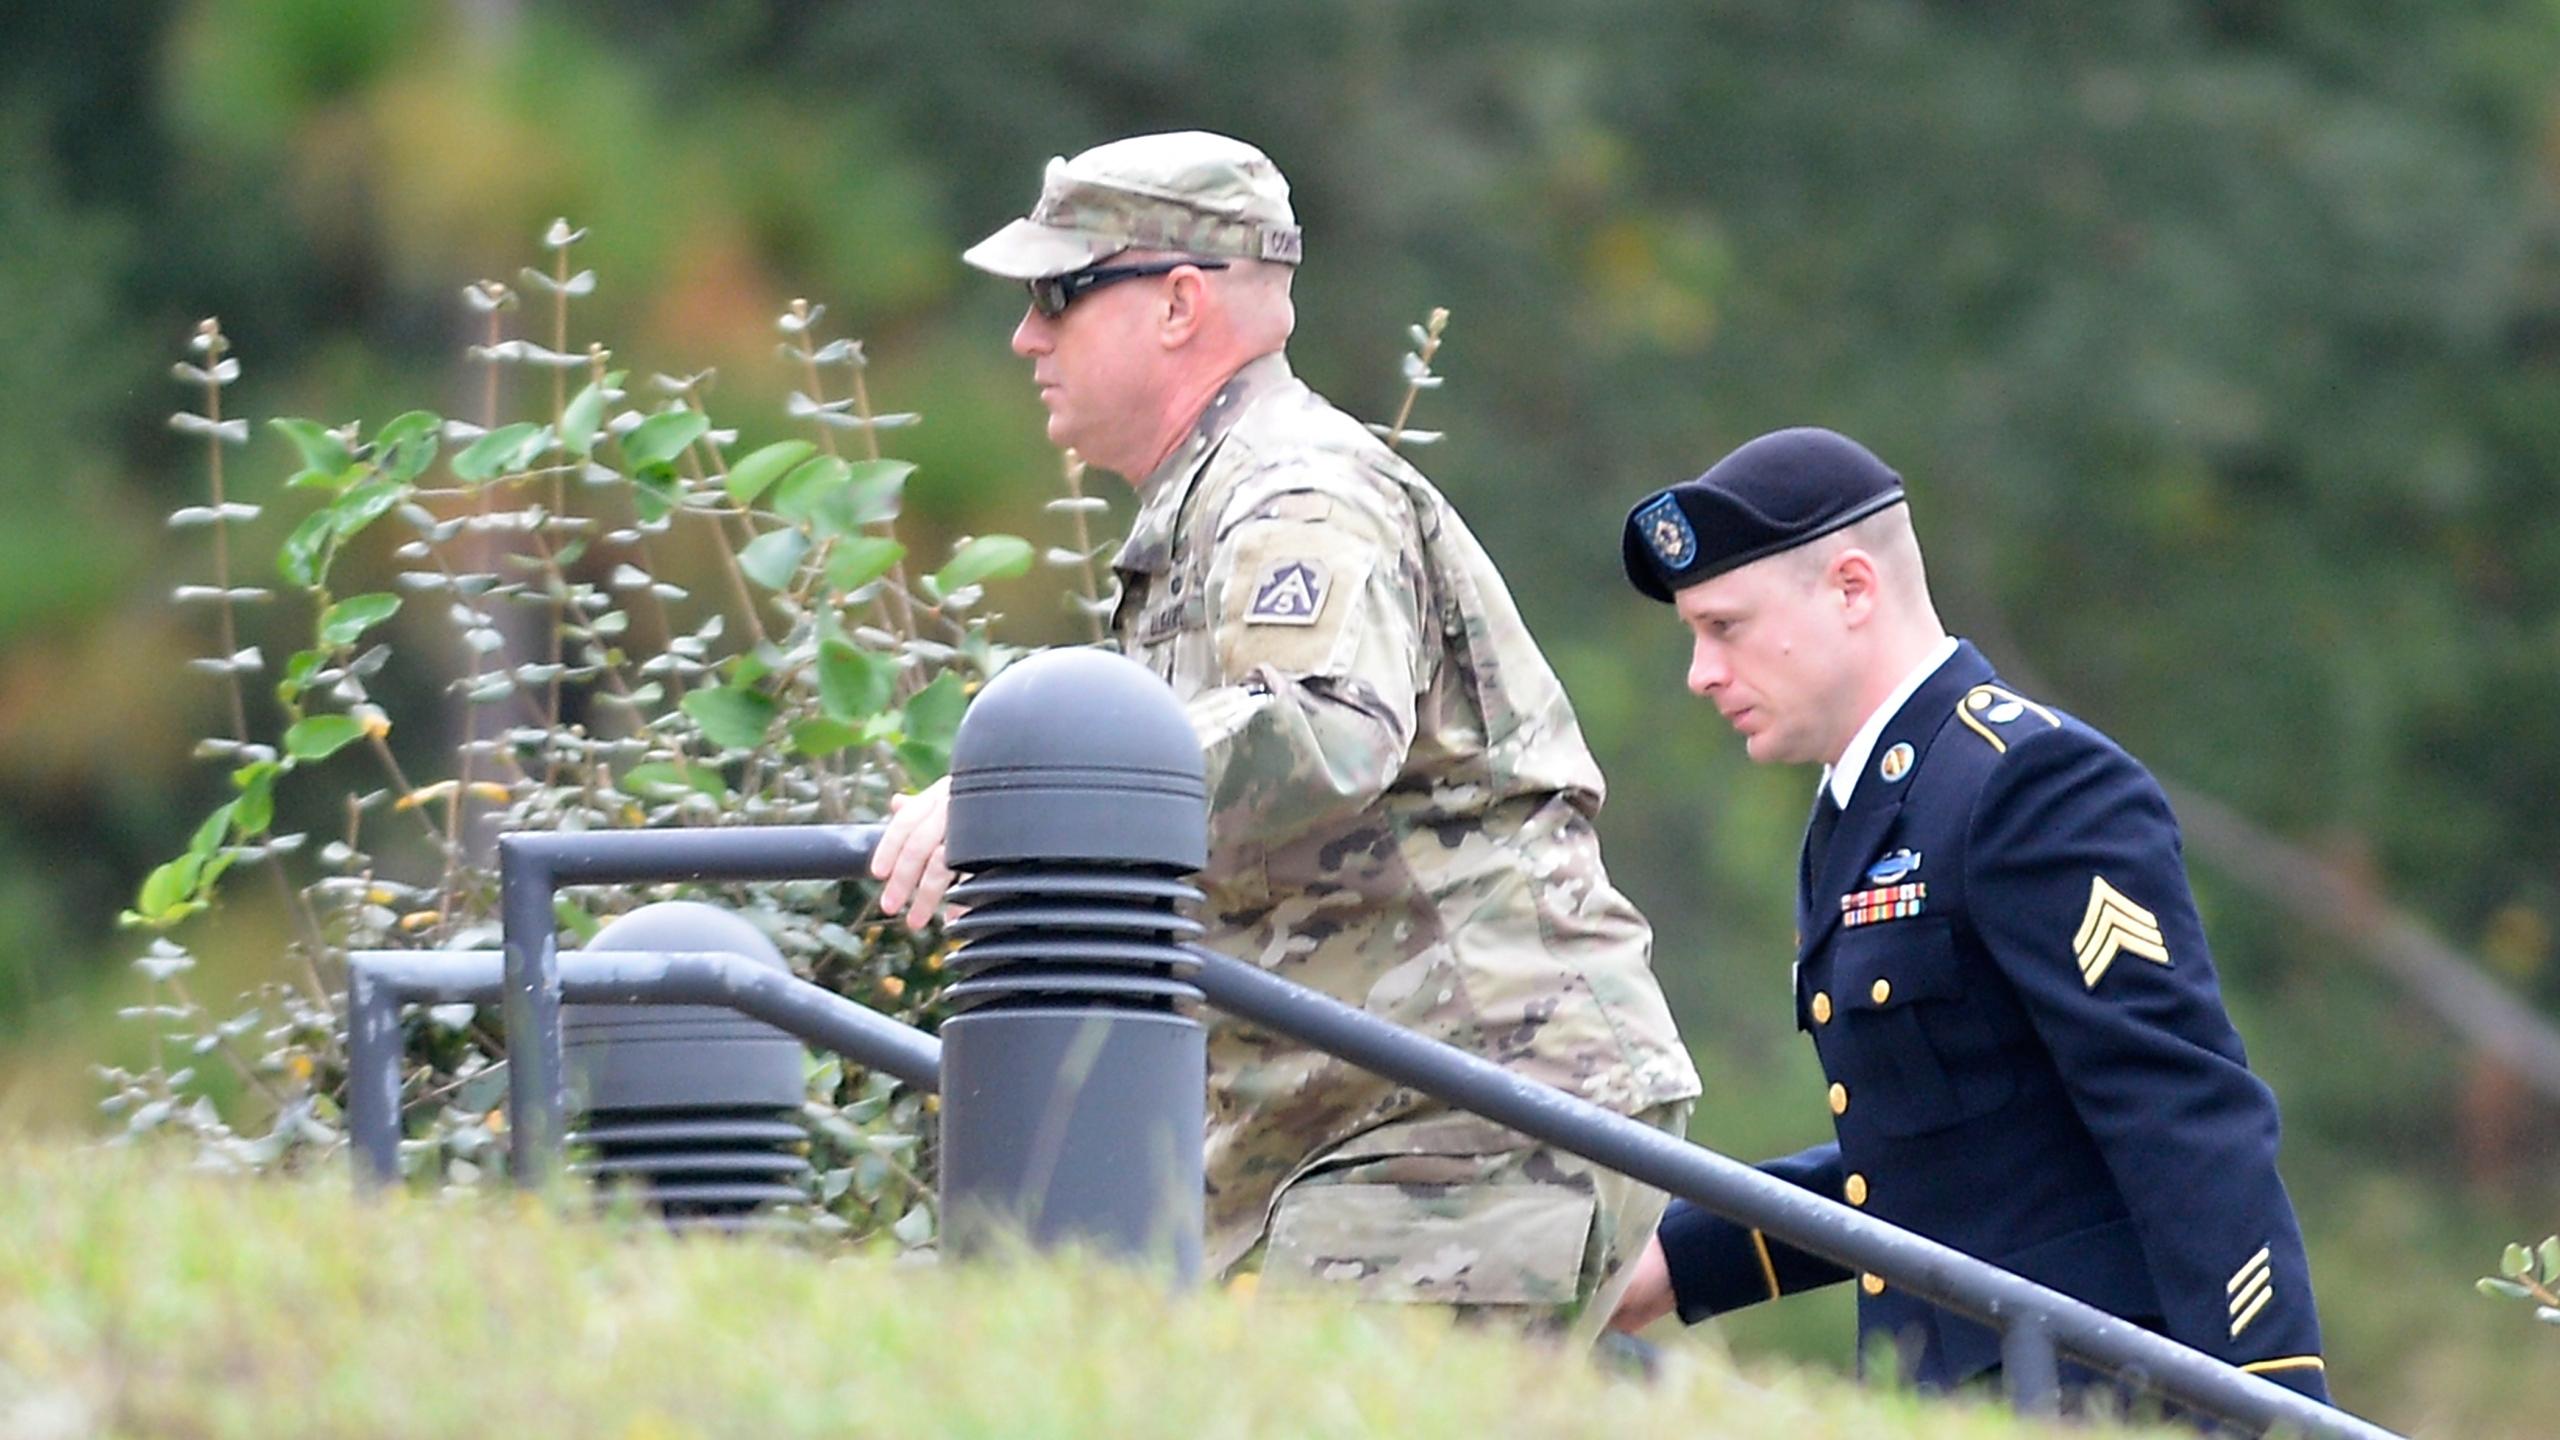 "U.S. Army Sgt. Robert Bowdrie ""Bowe"" Bergdahl (right) is escorted into the Ft. Bragg military courthouse for a motions hearing on October 16, 2017 in Fort Bragg, North Carolina. Bergdahl faces charges of desertion and endangering troops stemming from his decision to leave his outpost in 2009, which landed him five years in Taliban captivity. (Credit: Sara D. Davis/Getty Images)"